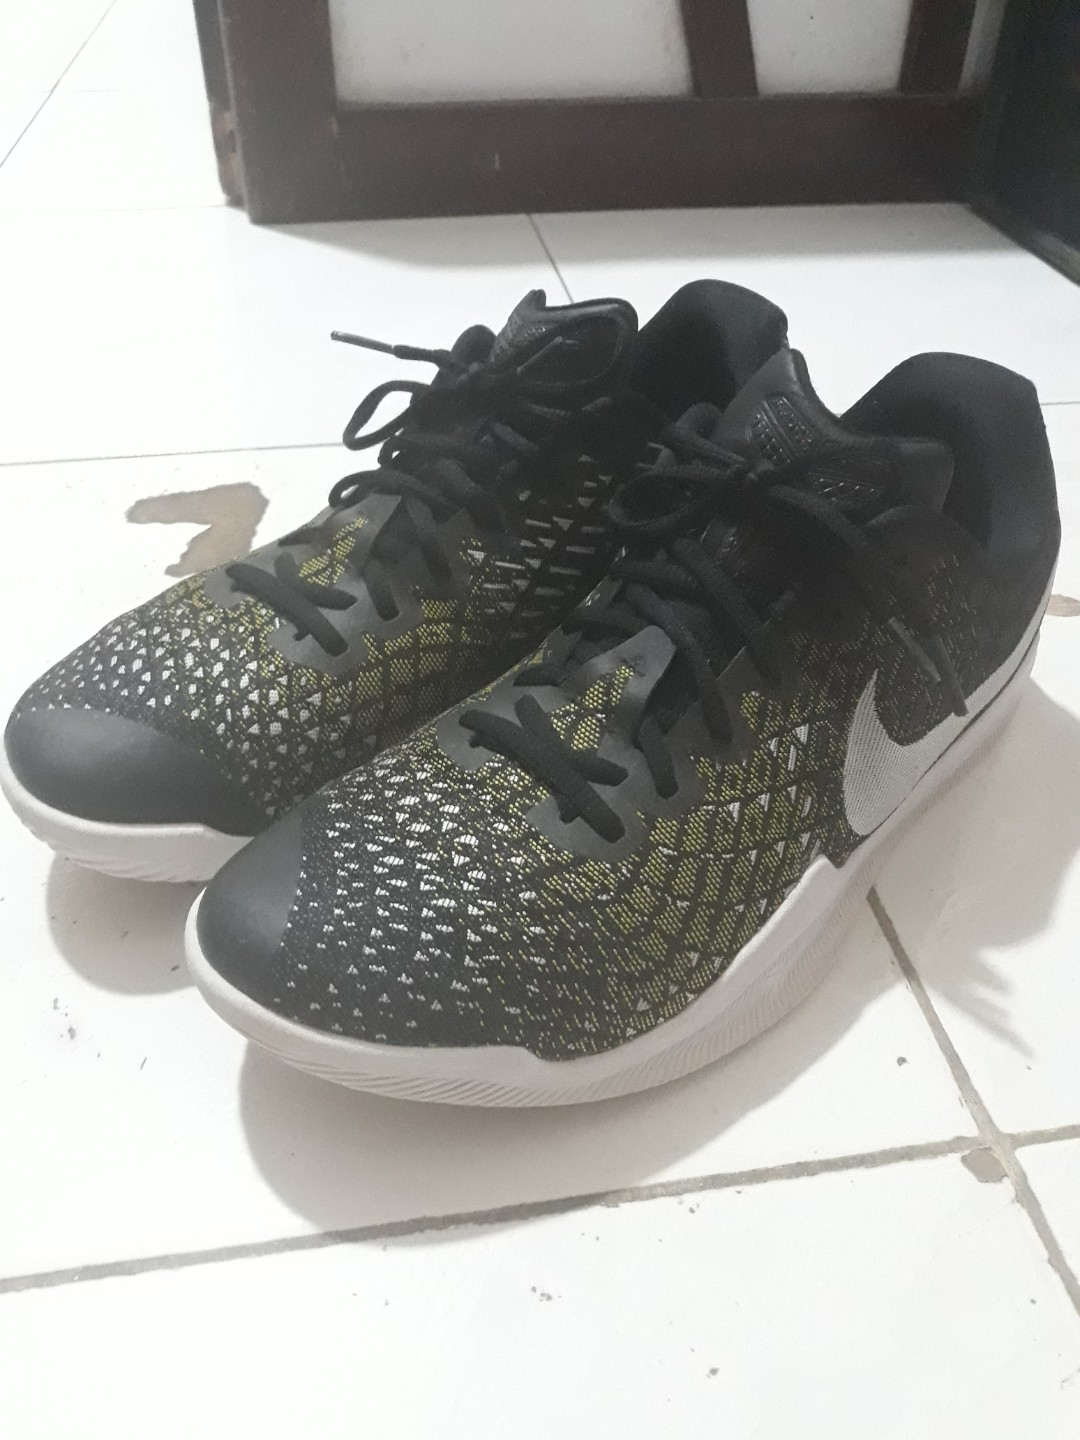 b7b25a24c755 Nike Kobe Mamba Instinct Basketball Shoes